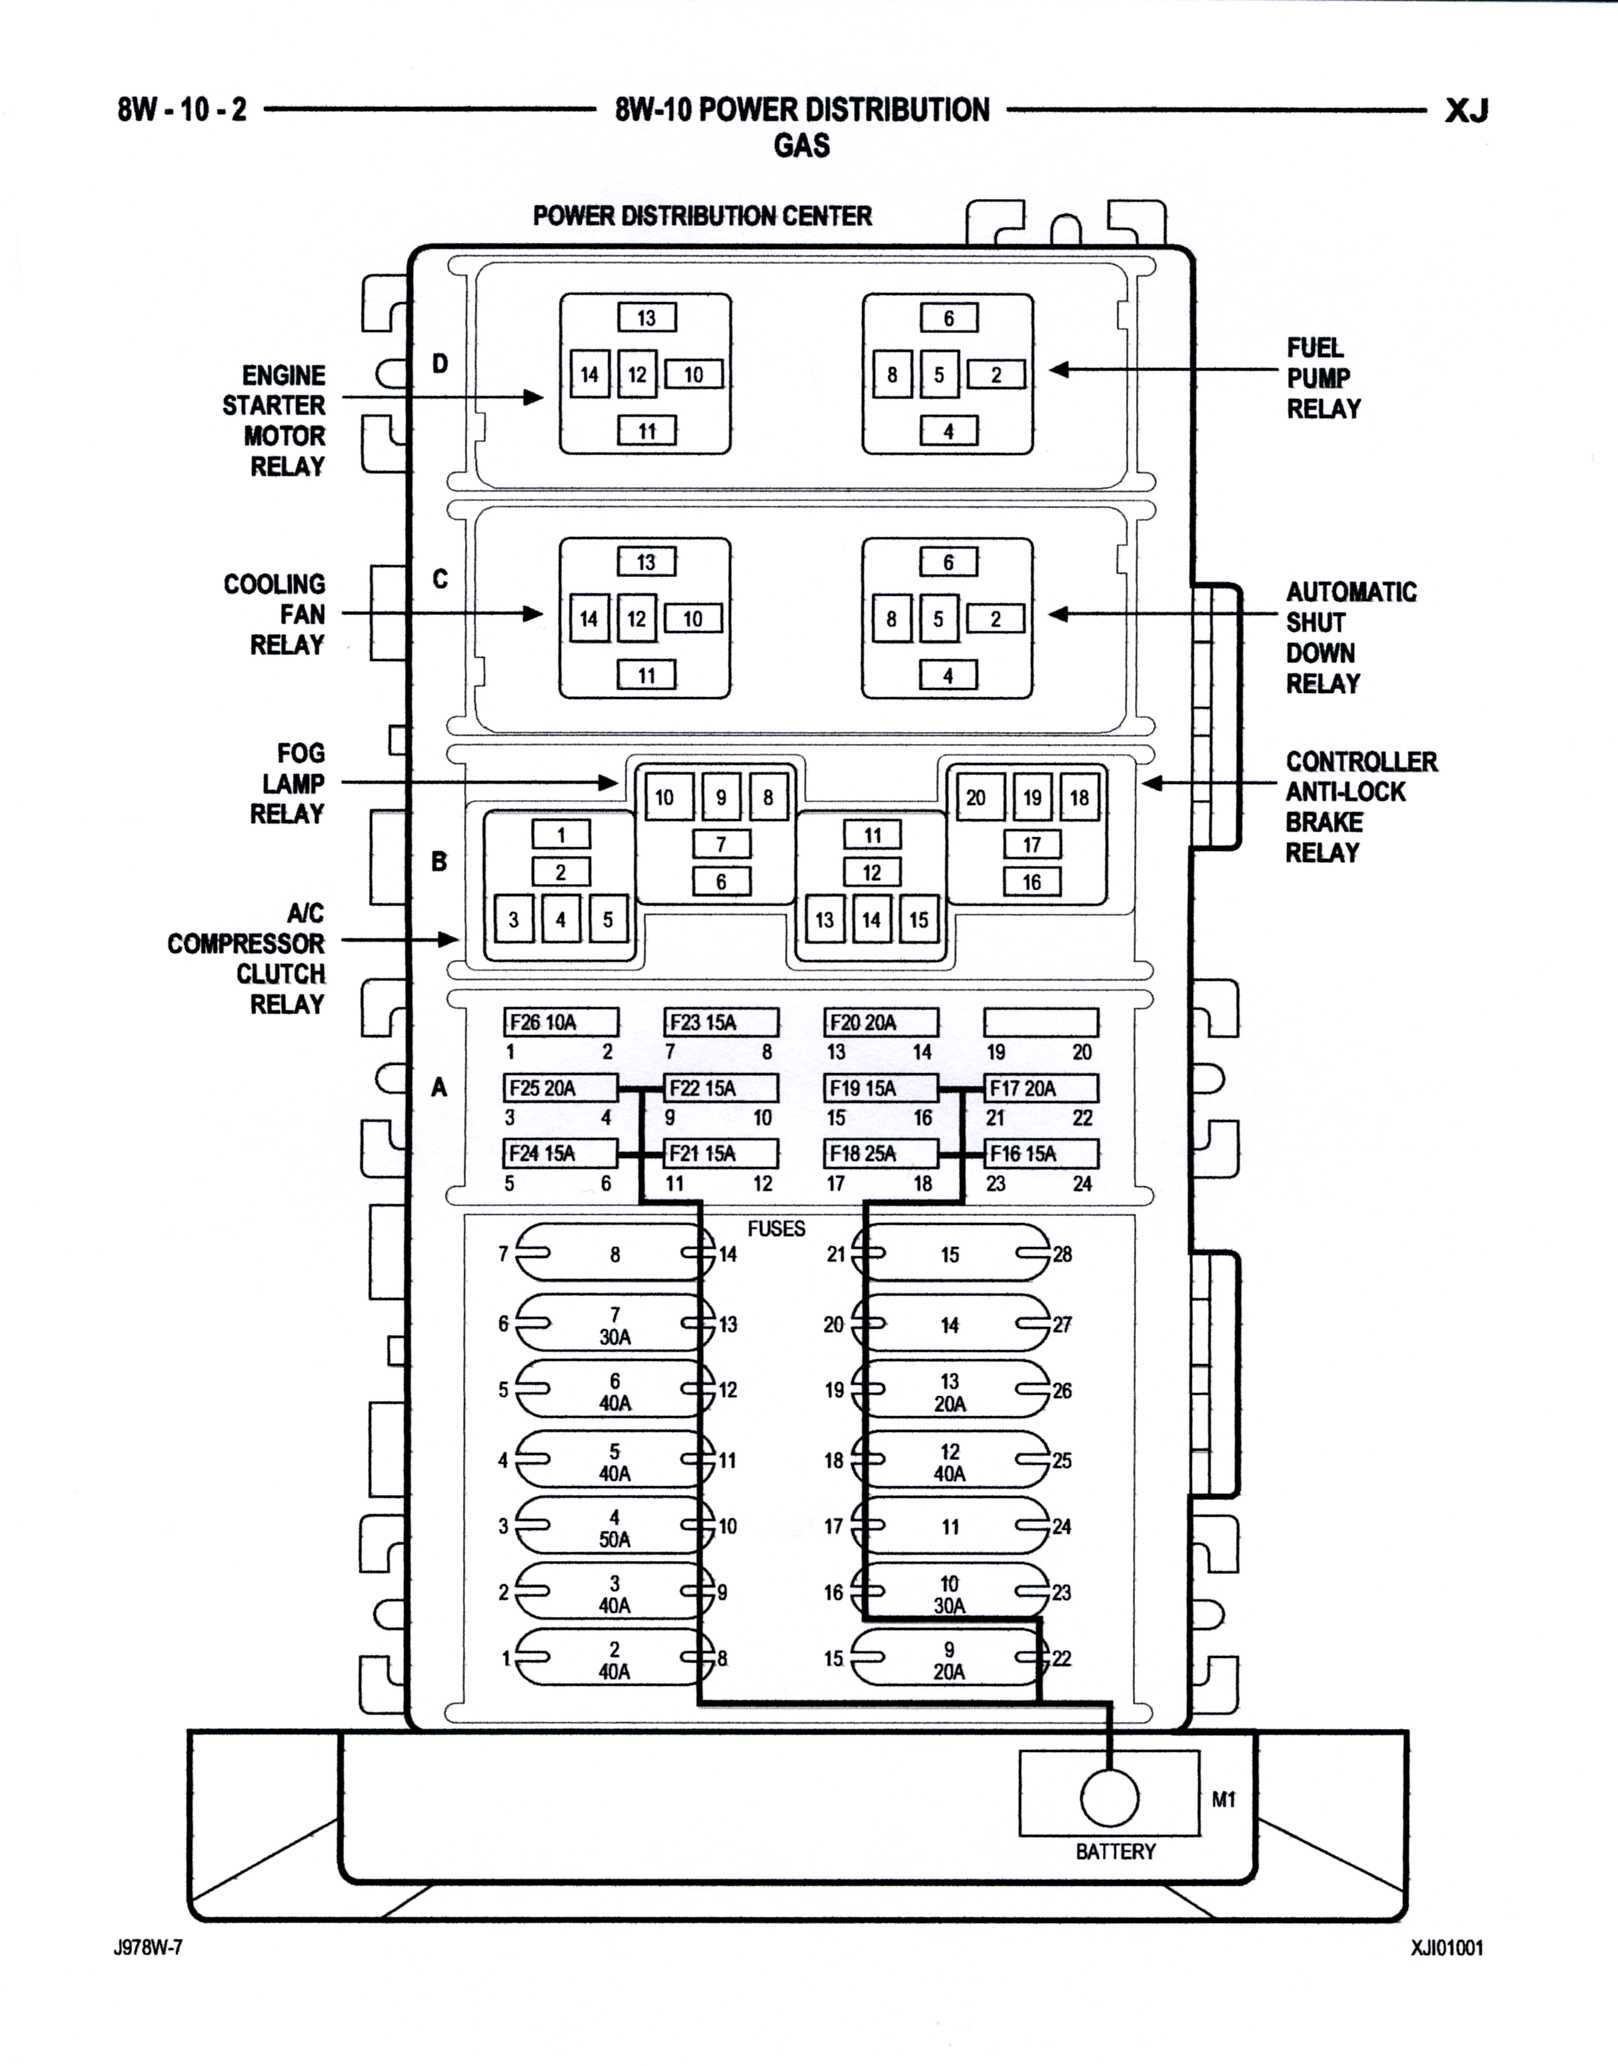 91 cherokee wiring diagram for home network chevy silverado xj forum html autos post